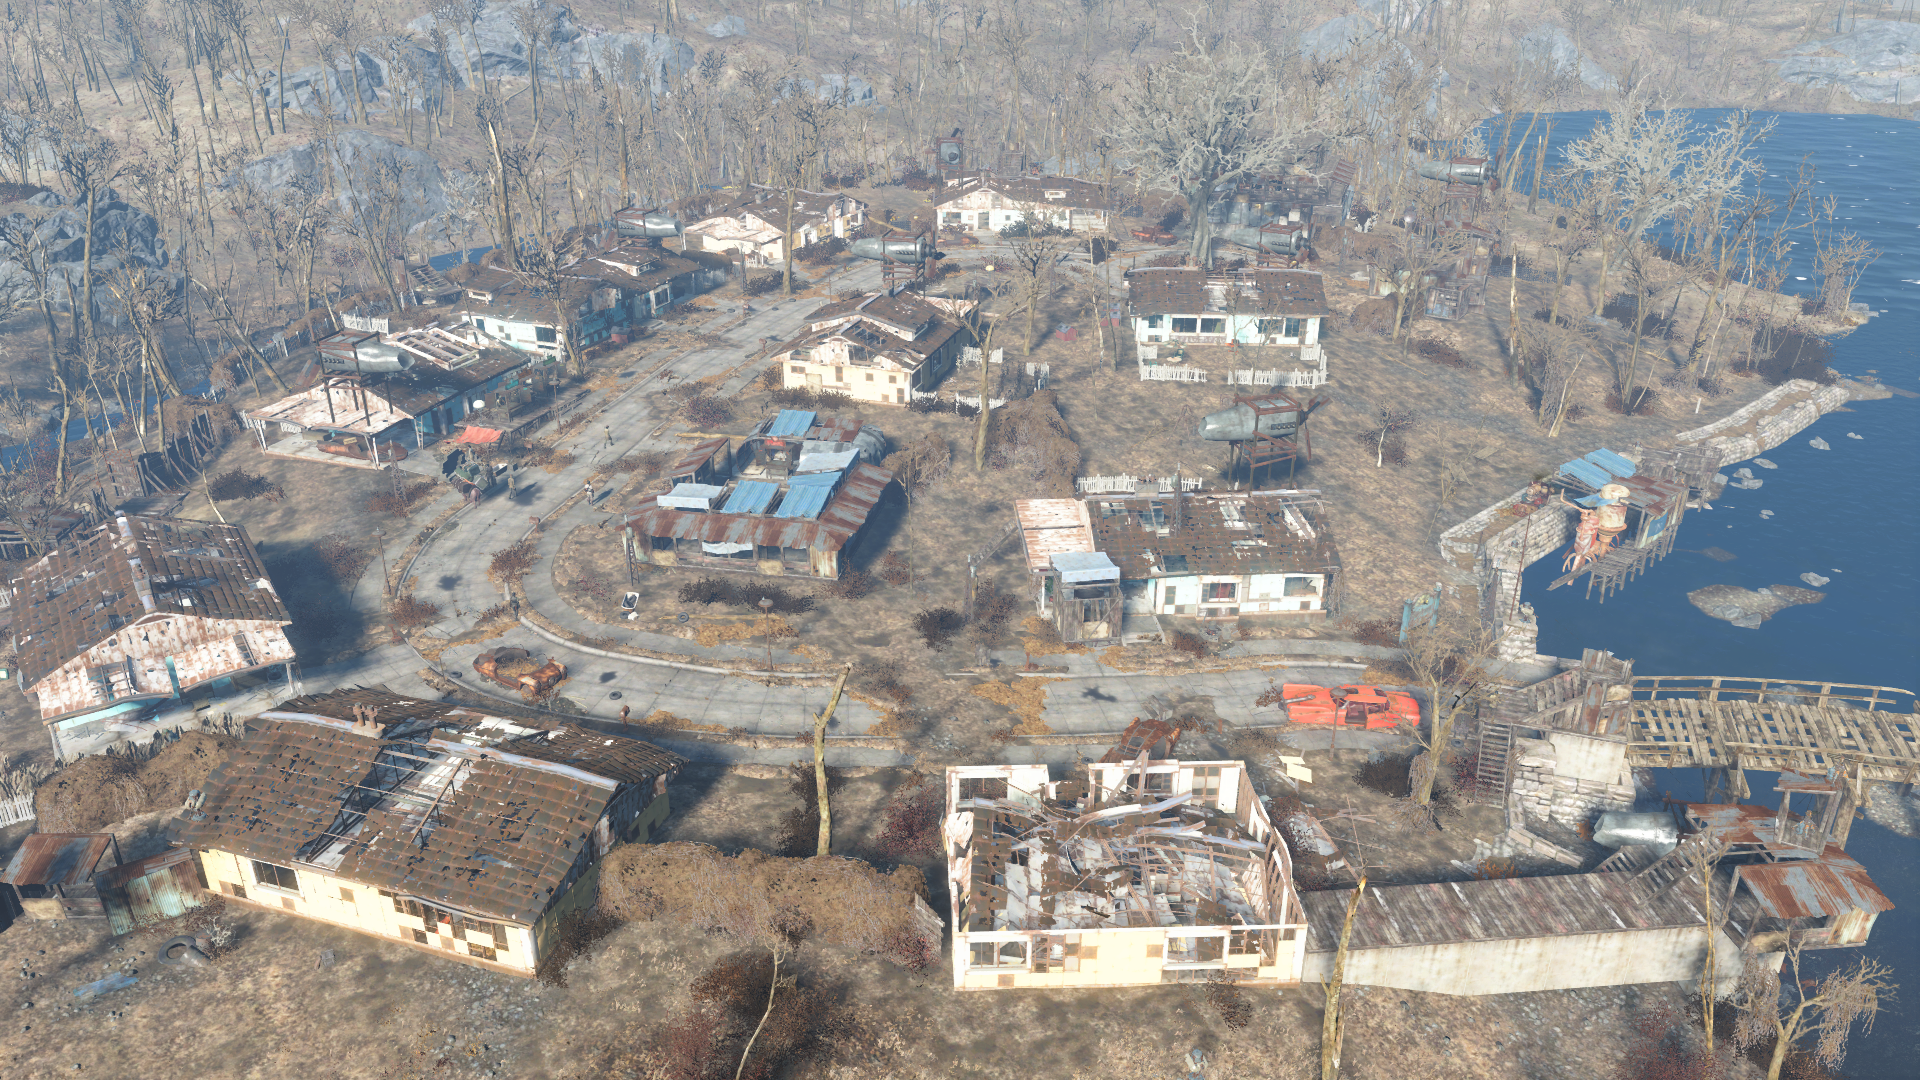 how to build a wall around sanctuary fallout 4